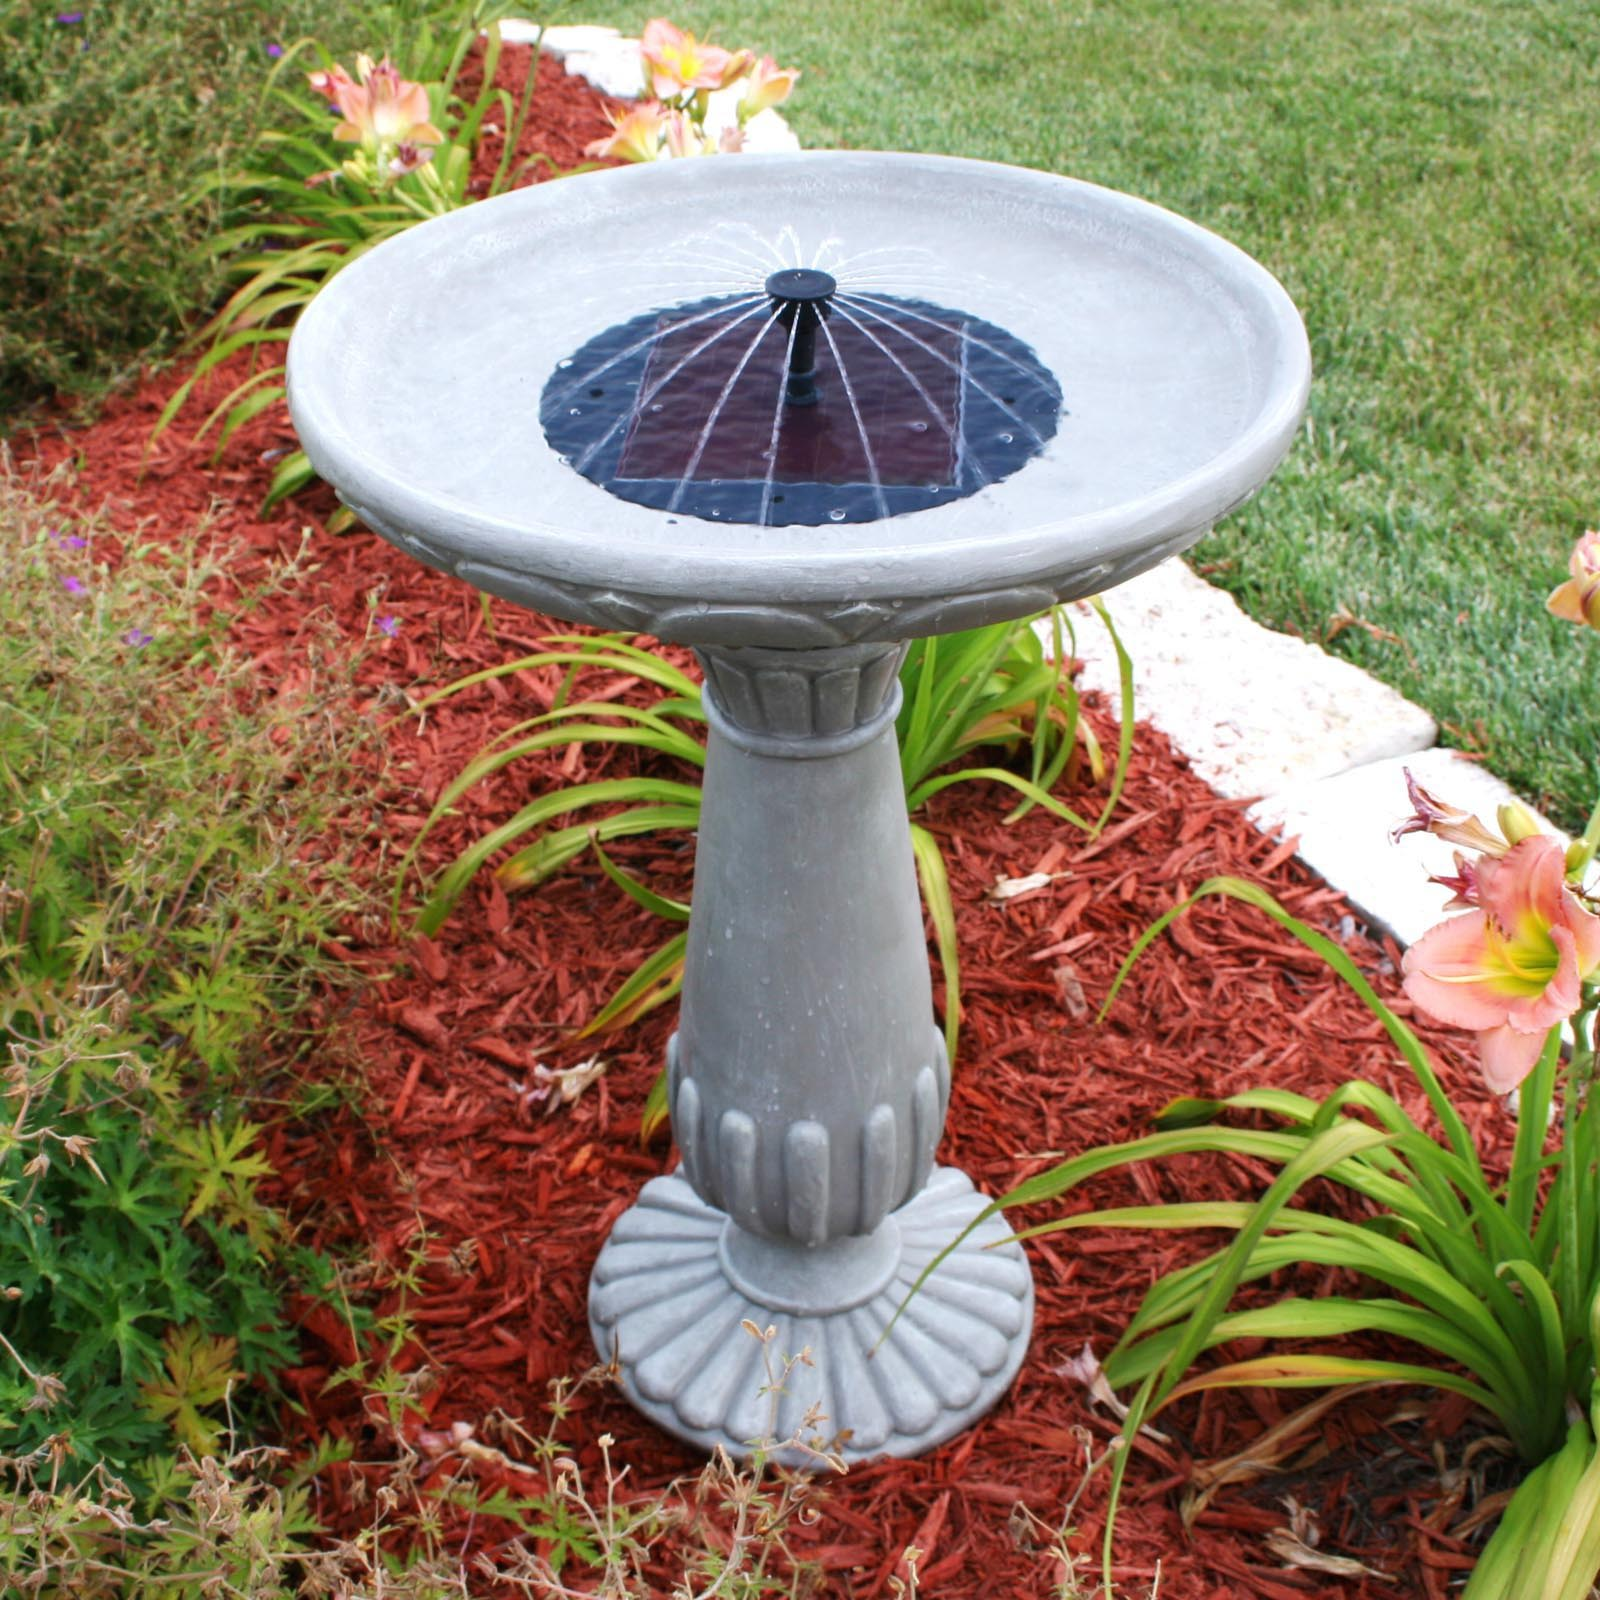 DIY Solar Heated Bird Bath